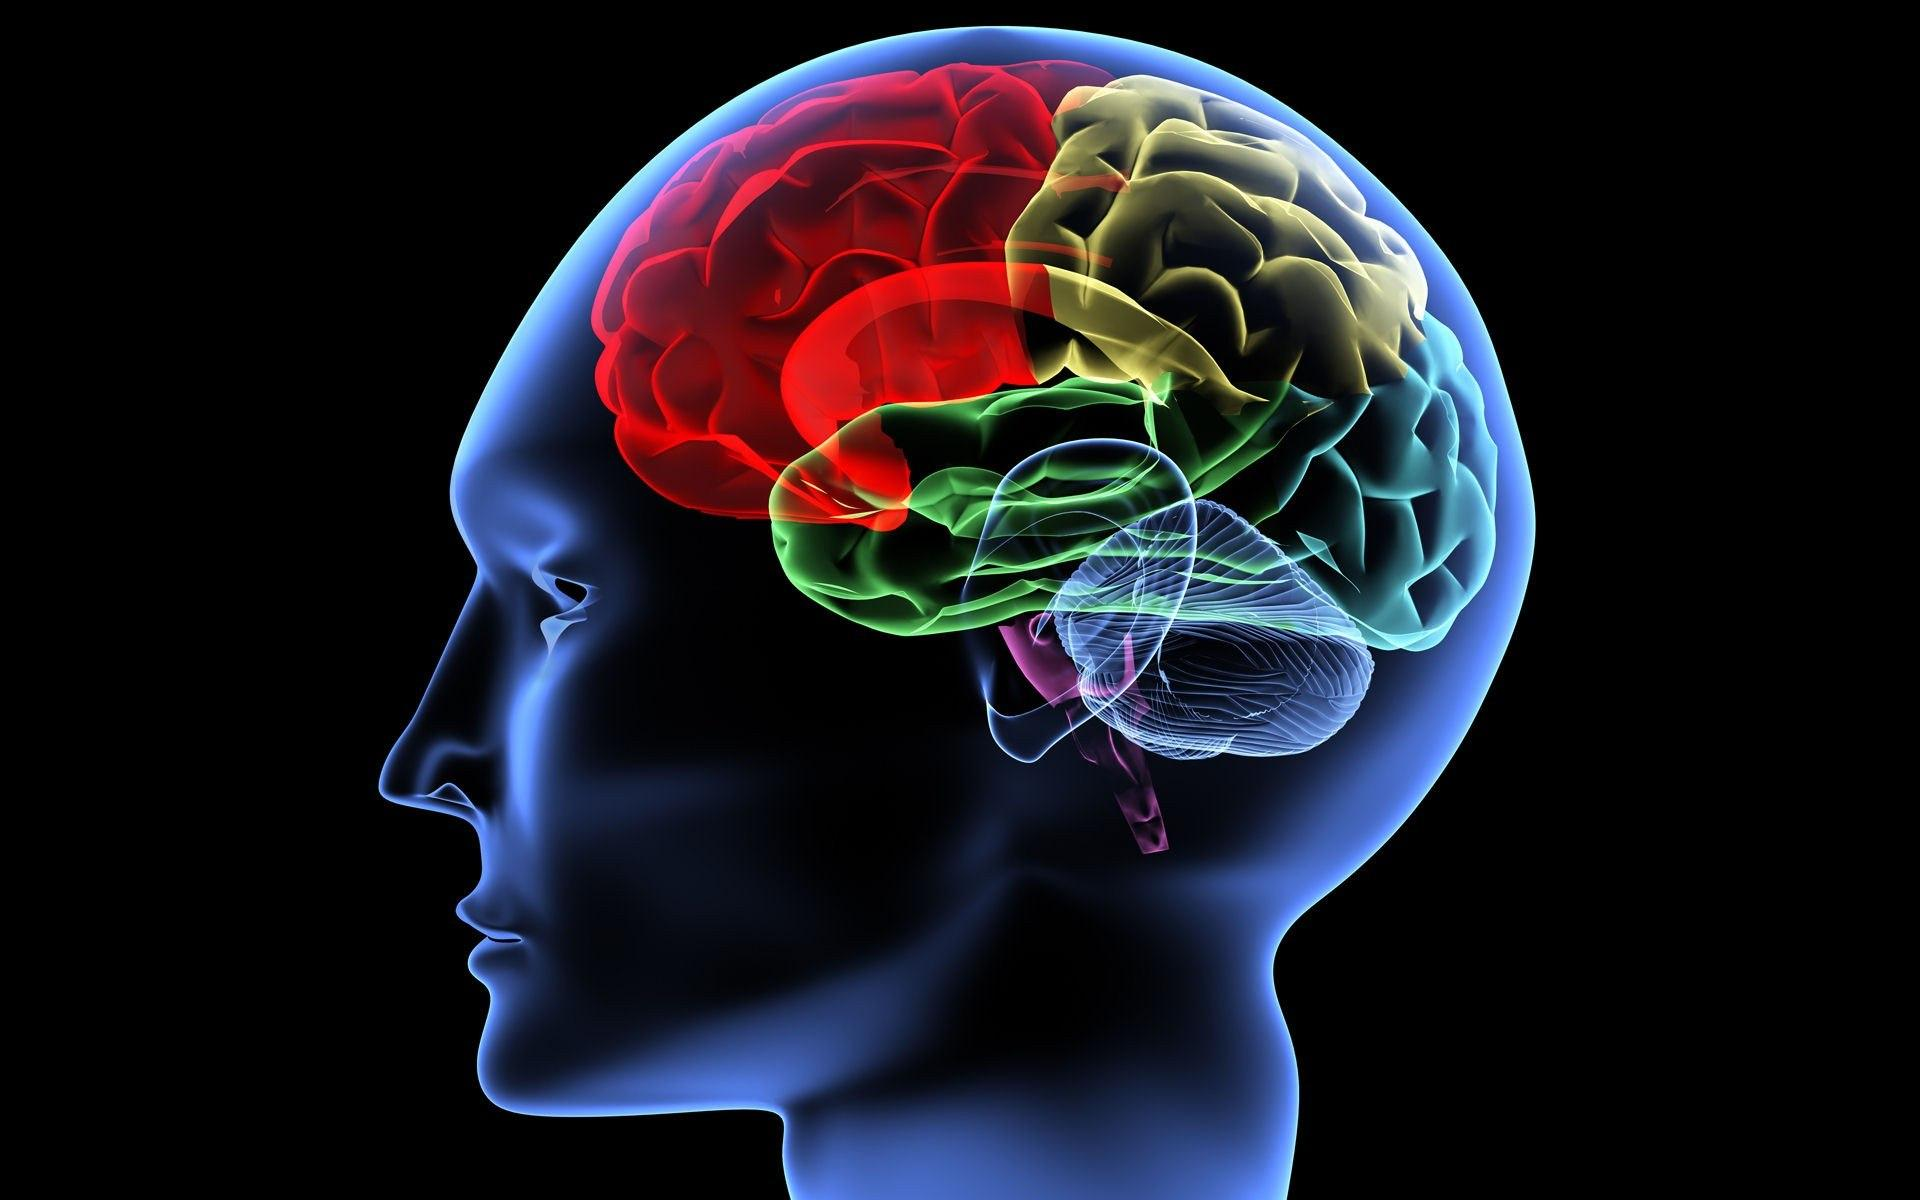 discussing the definition characteristics and causes of mental retardation traumatic brain injury au As mentioned, ids have many causes these include genetics, brain injury, and certain medical conditions people with an id are typically provided with additional supports these supports help people to enjoy a satisfying life despite their disability people with limited mental abilities struggle to develop the skills needed for independent living.